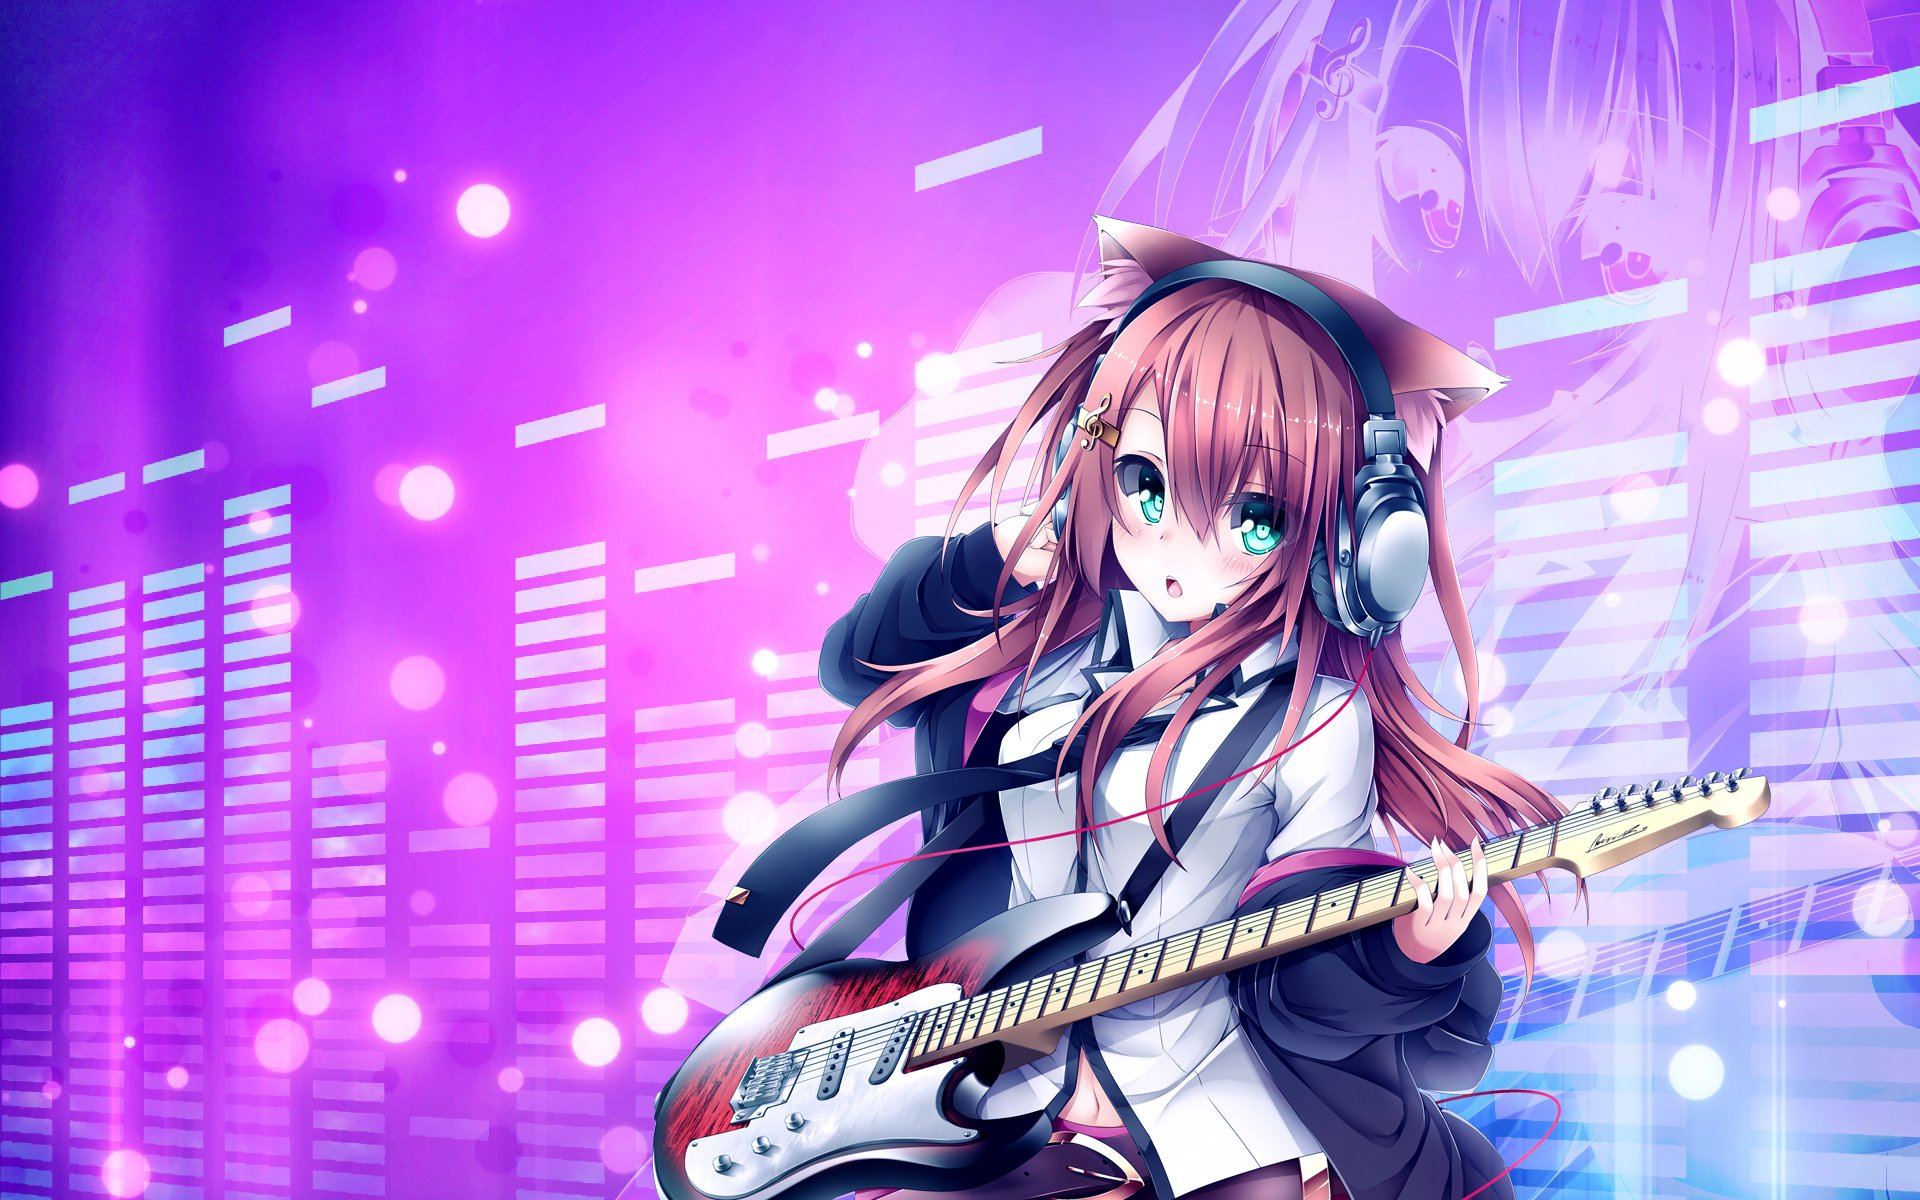 Guitar Anime Girl Wallpaper HD Wallpaper WallpaperLepi 1920x1200